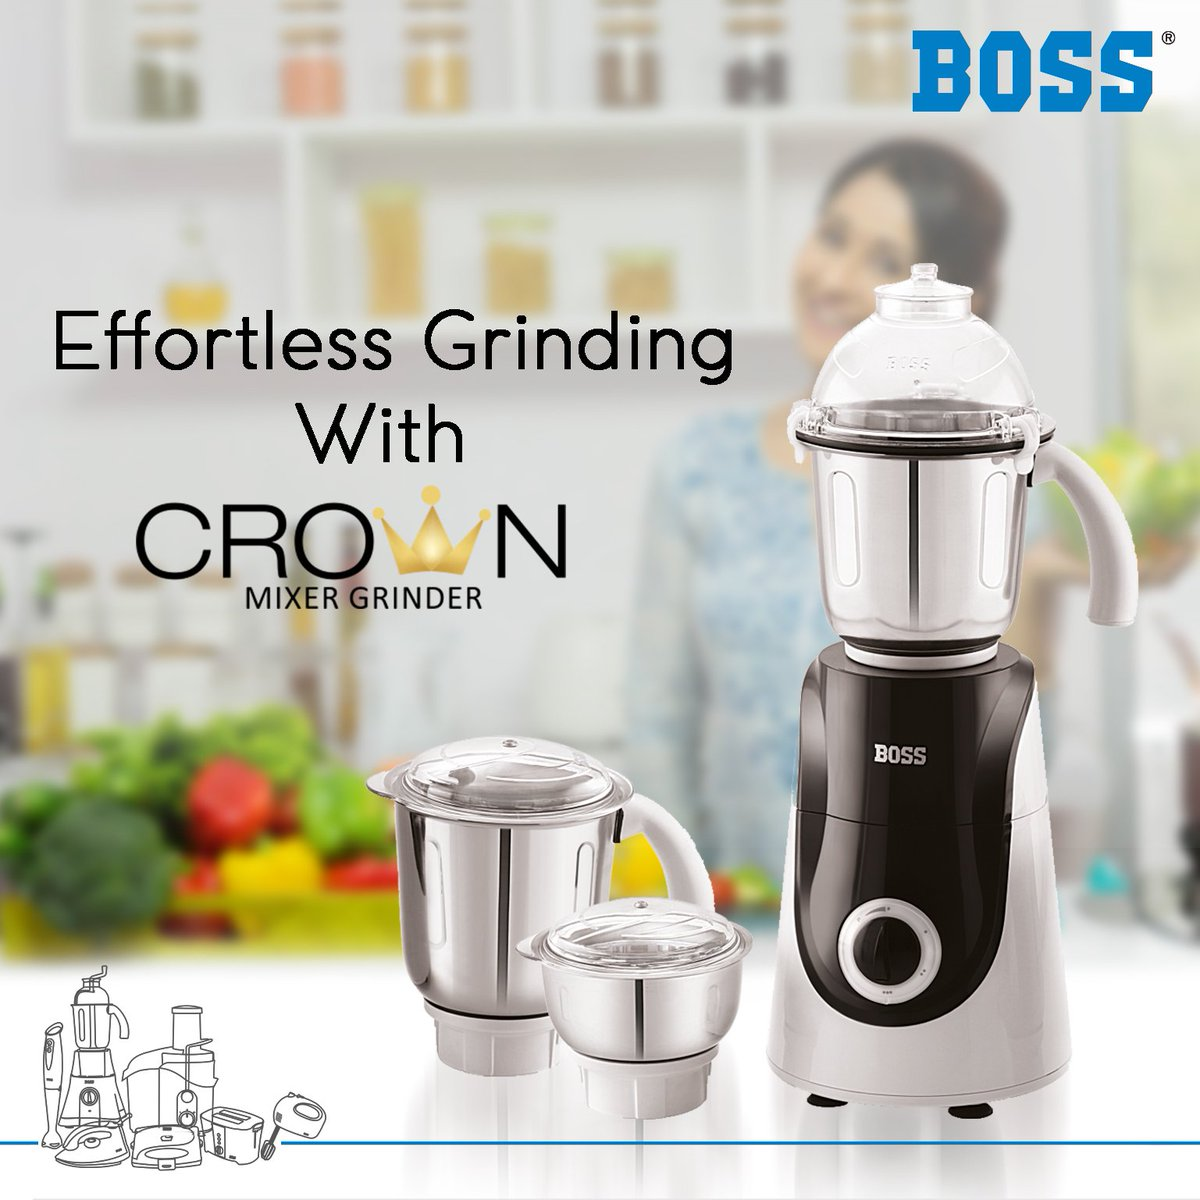 Boss Home Appliances On Twitter Boss Crown Mixer Grinder Appliance That Can Make Your Life Easy Buy Now Https T Co Zjcgimo6ym Bosshomeappliance Newarrival Newlaunch Bosscrownmixer Bossmixergrinder Https T Co El5scayujd